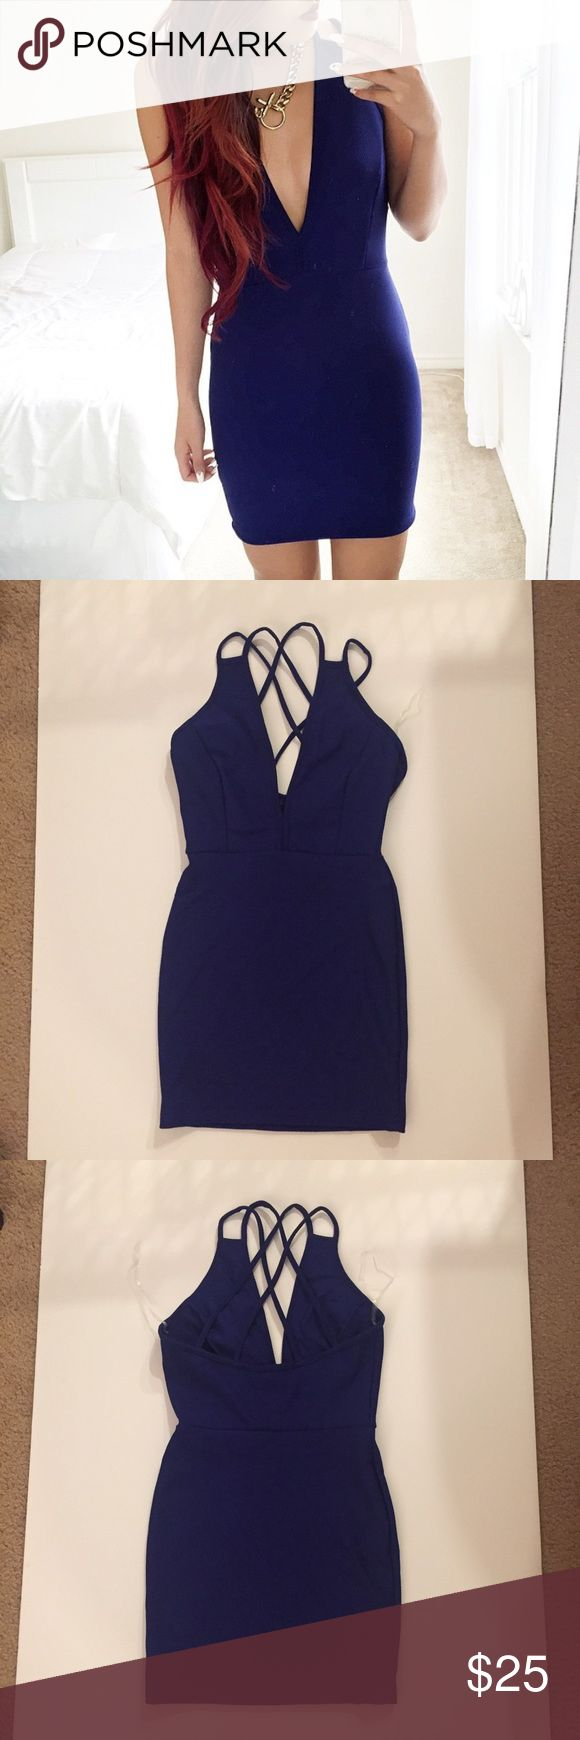 LIKE NEW blue strappy bodycon dress -S Only worn once for picture, deep blue bodycon dress from the vintage shop.  NOT missguided, tagged for exposure.  Size small.  Tags: tiger mist, showpo, forever 21, hello Molly, mura, stelly, hot Miami styles Missguided Dresses Mini